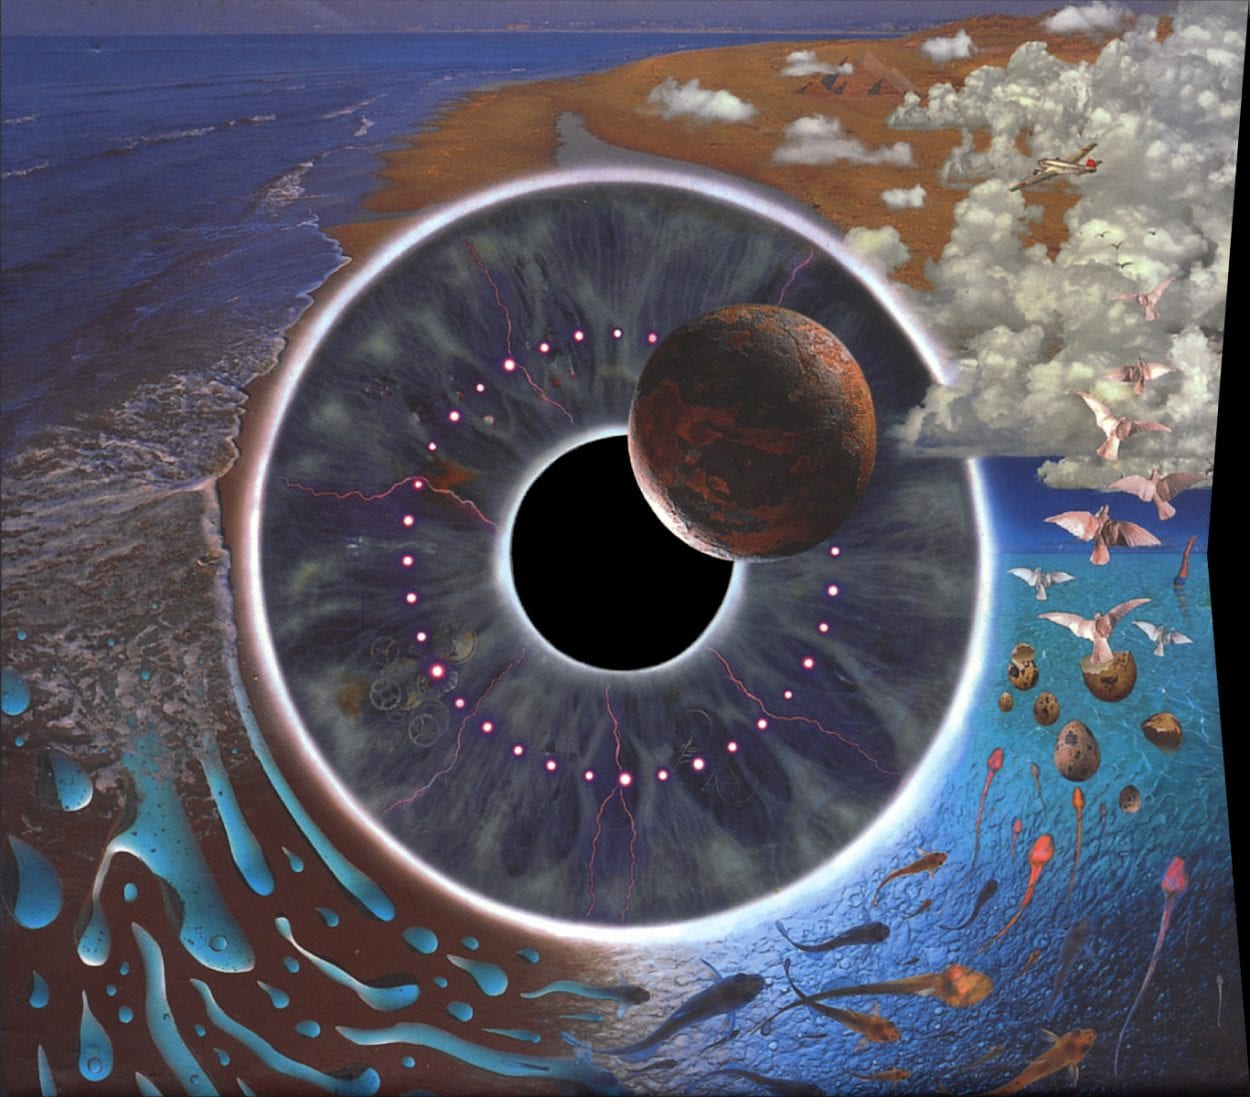 A surreal image of blue sky and water bend around a spherical vortex that had working light and an image of an orbiting moon.